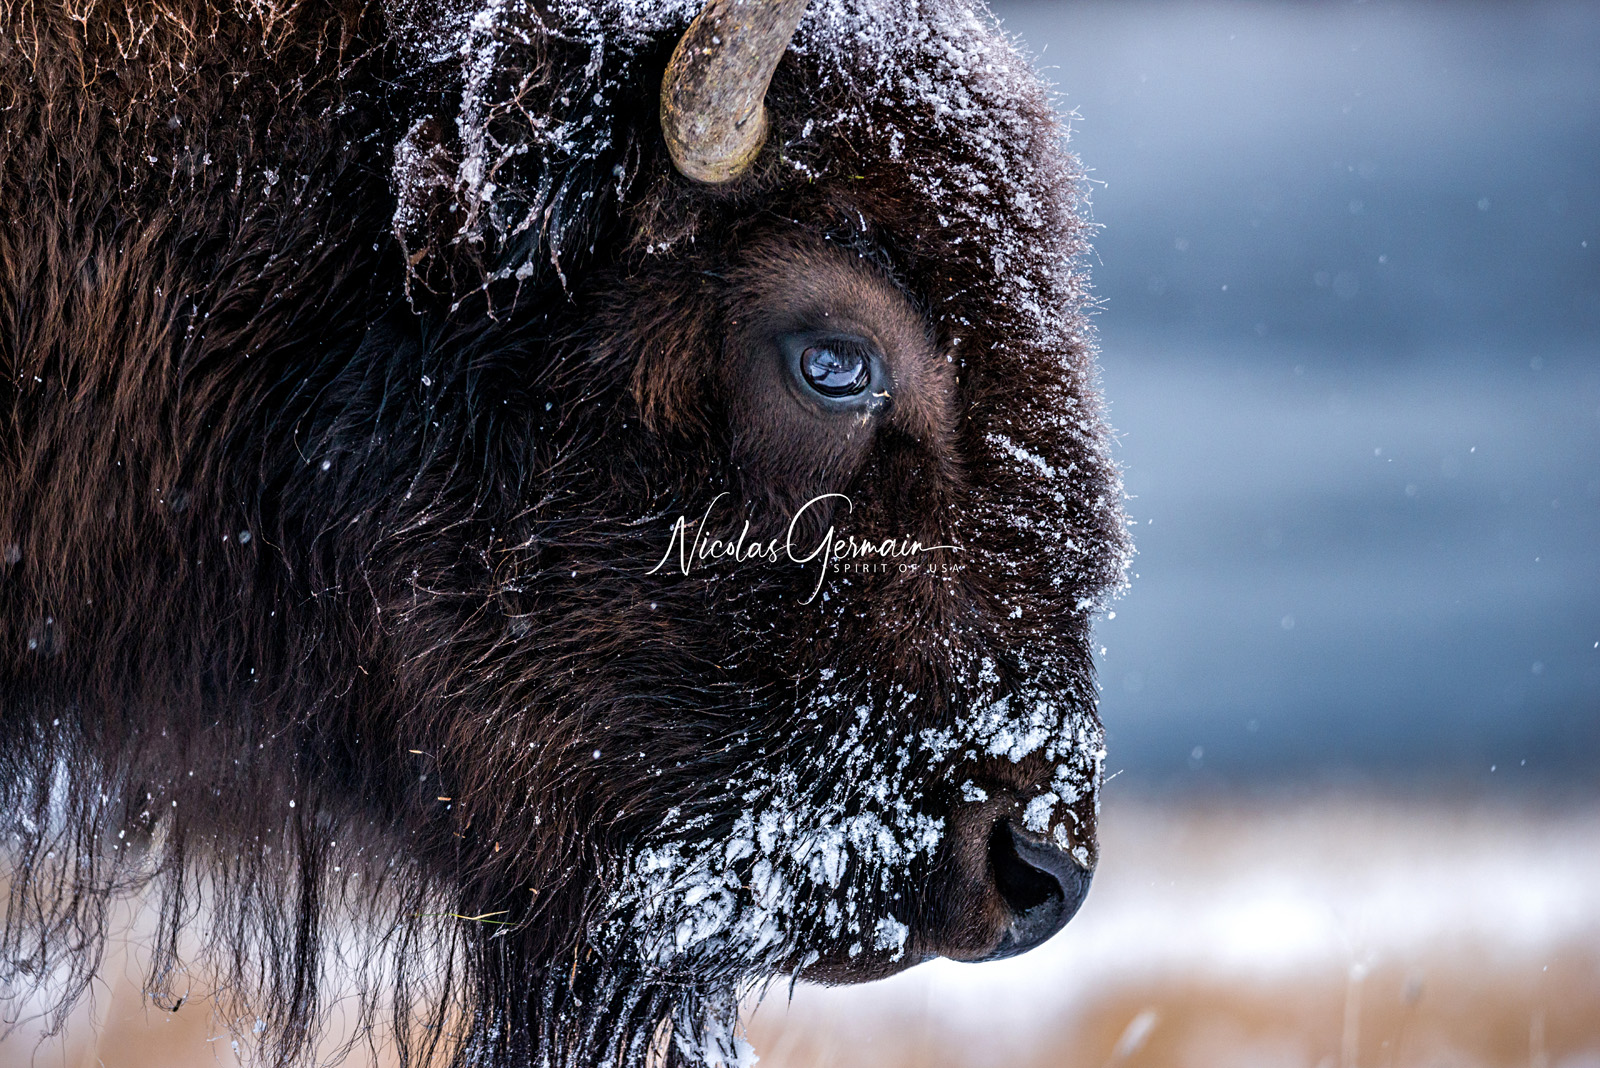 Bison à Yellowstone - Nicolas Germain, Spirit of USA